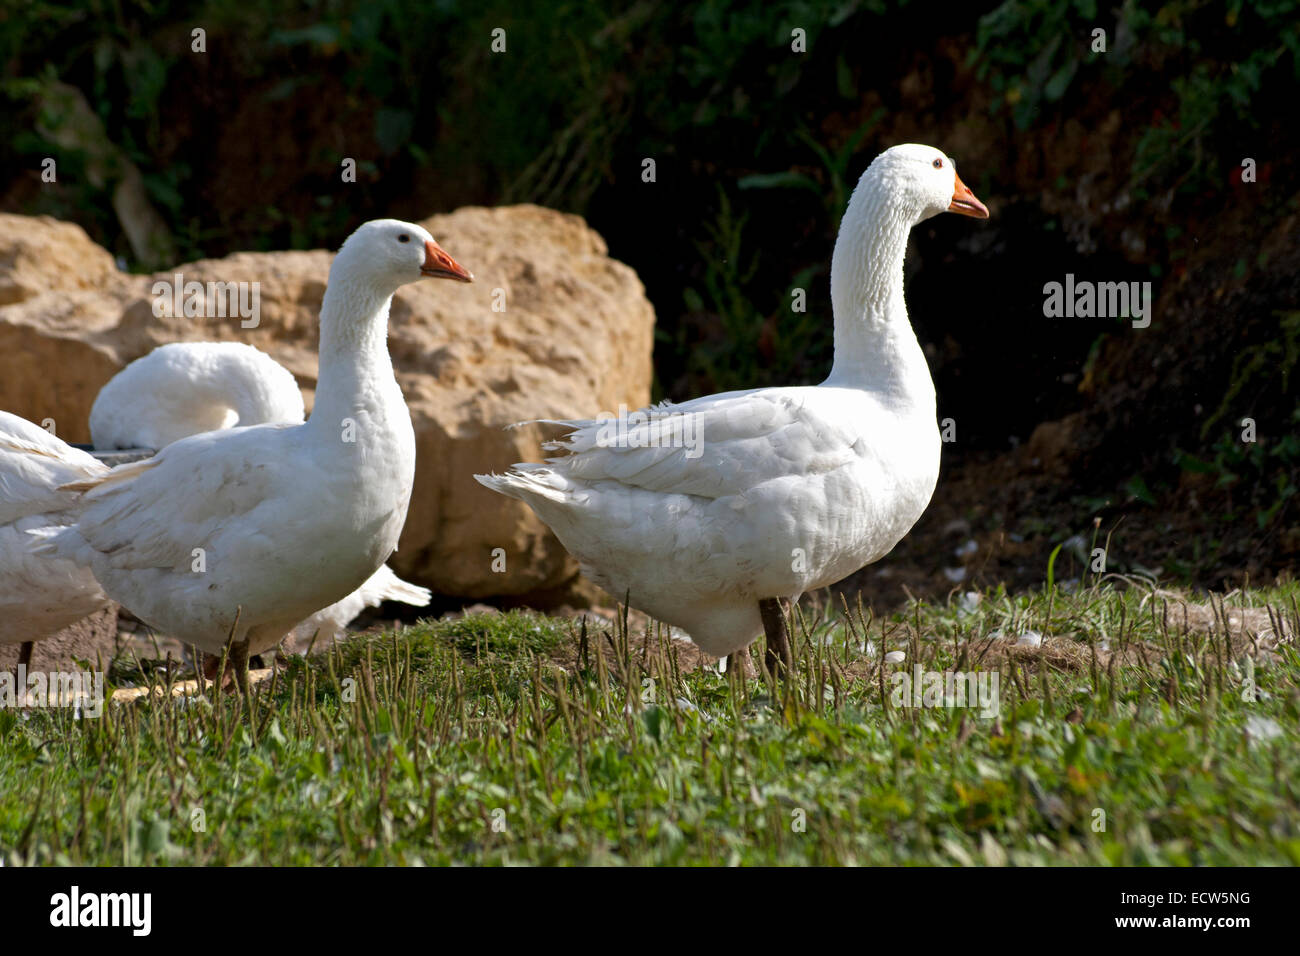 goose outside on meadow running free - Stock Image